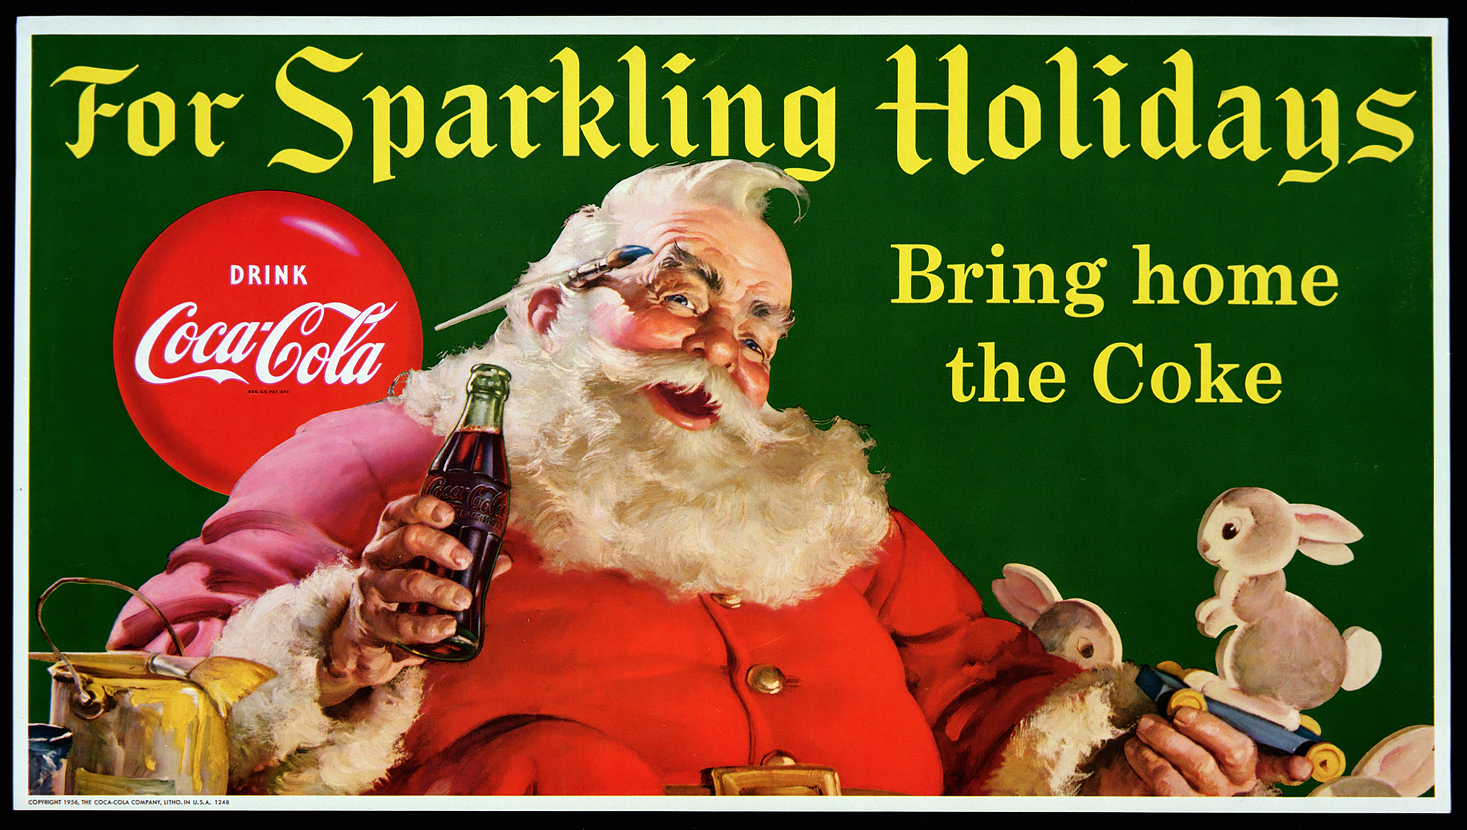 Coke Christmas Ads.Merry Christmas From Coca Cola Throughout The Years